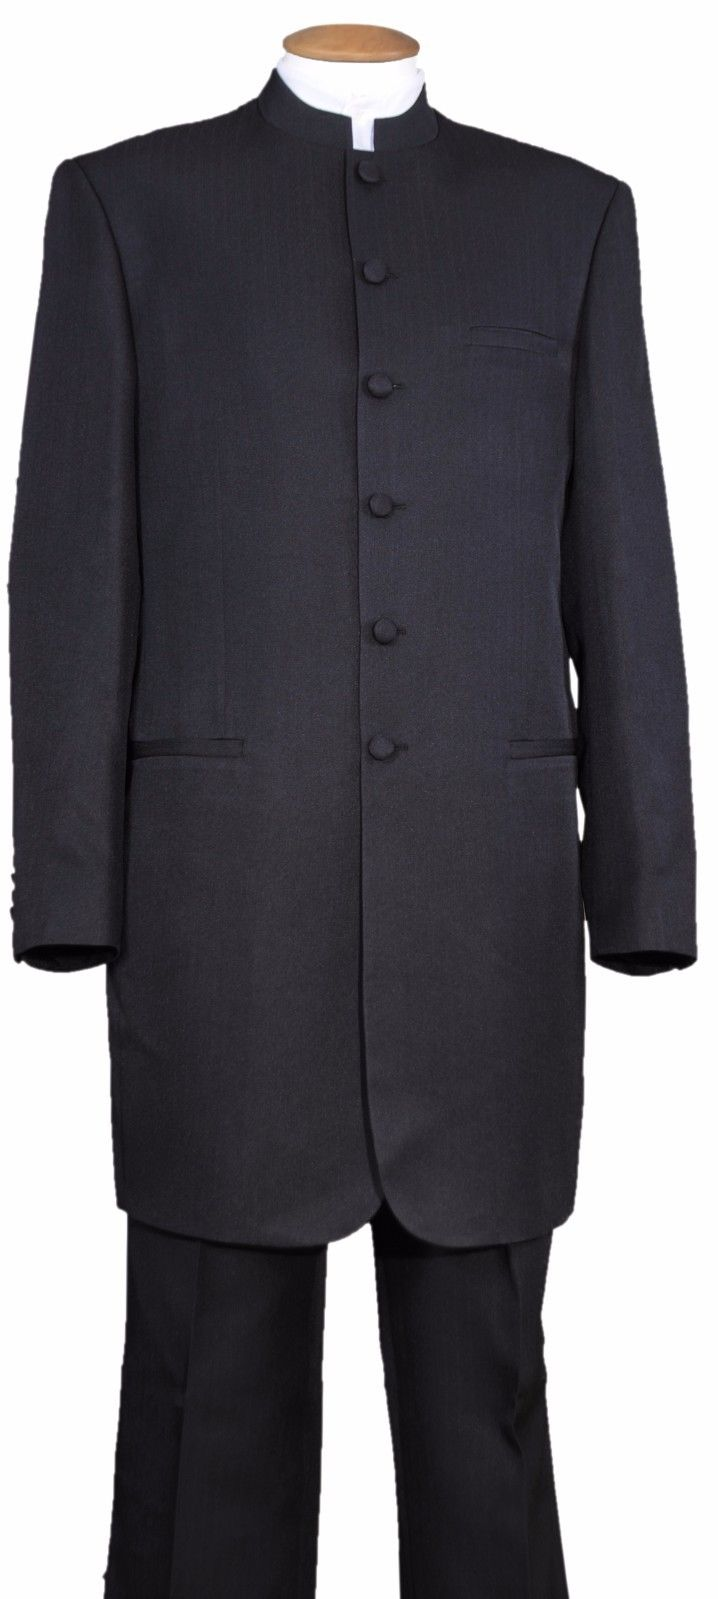 Fortino Landi Suit 6905H-Black - Church Suits For Less